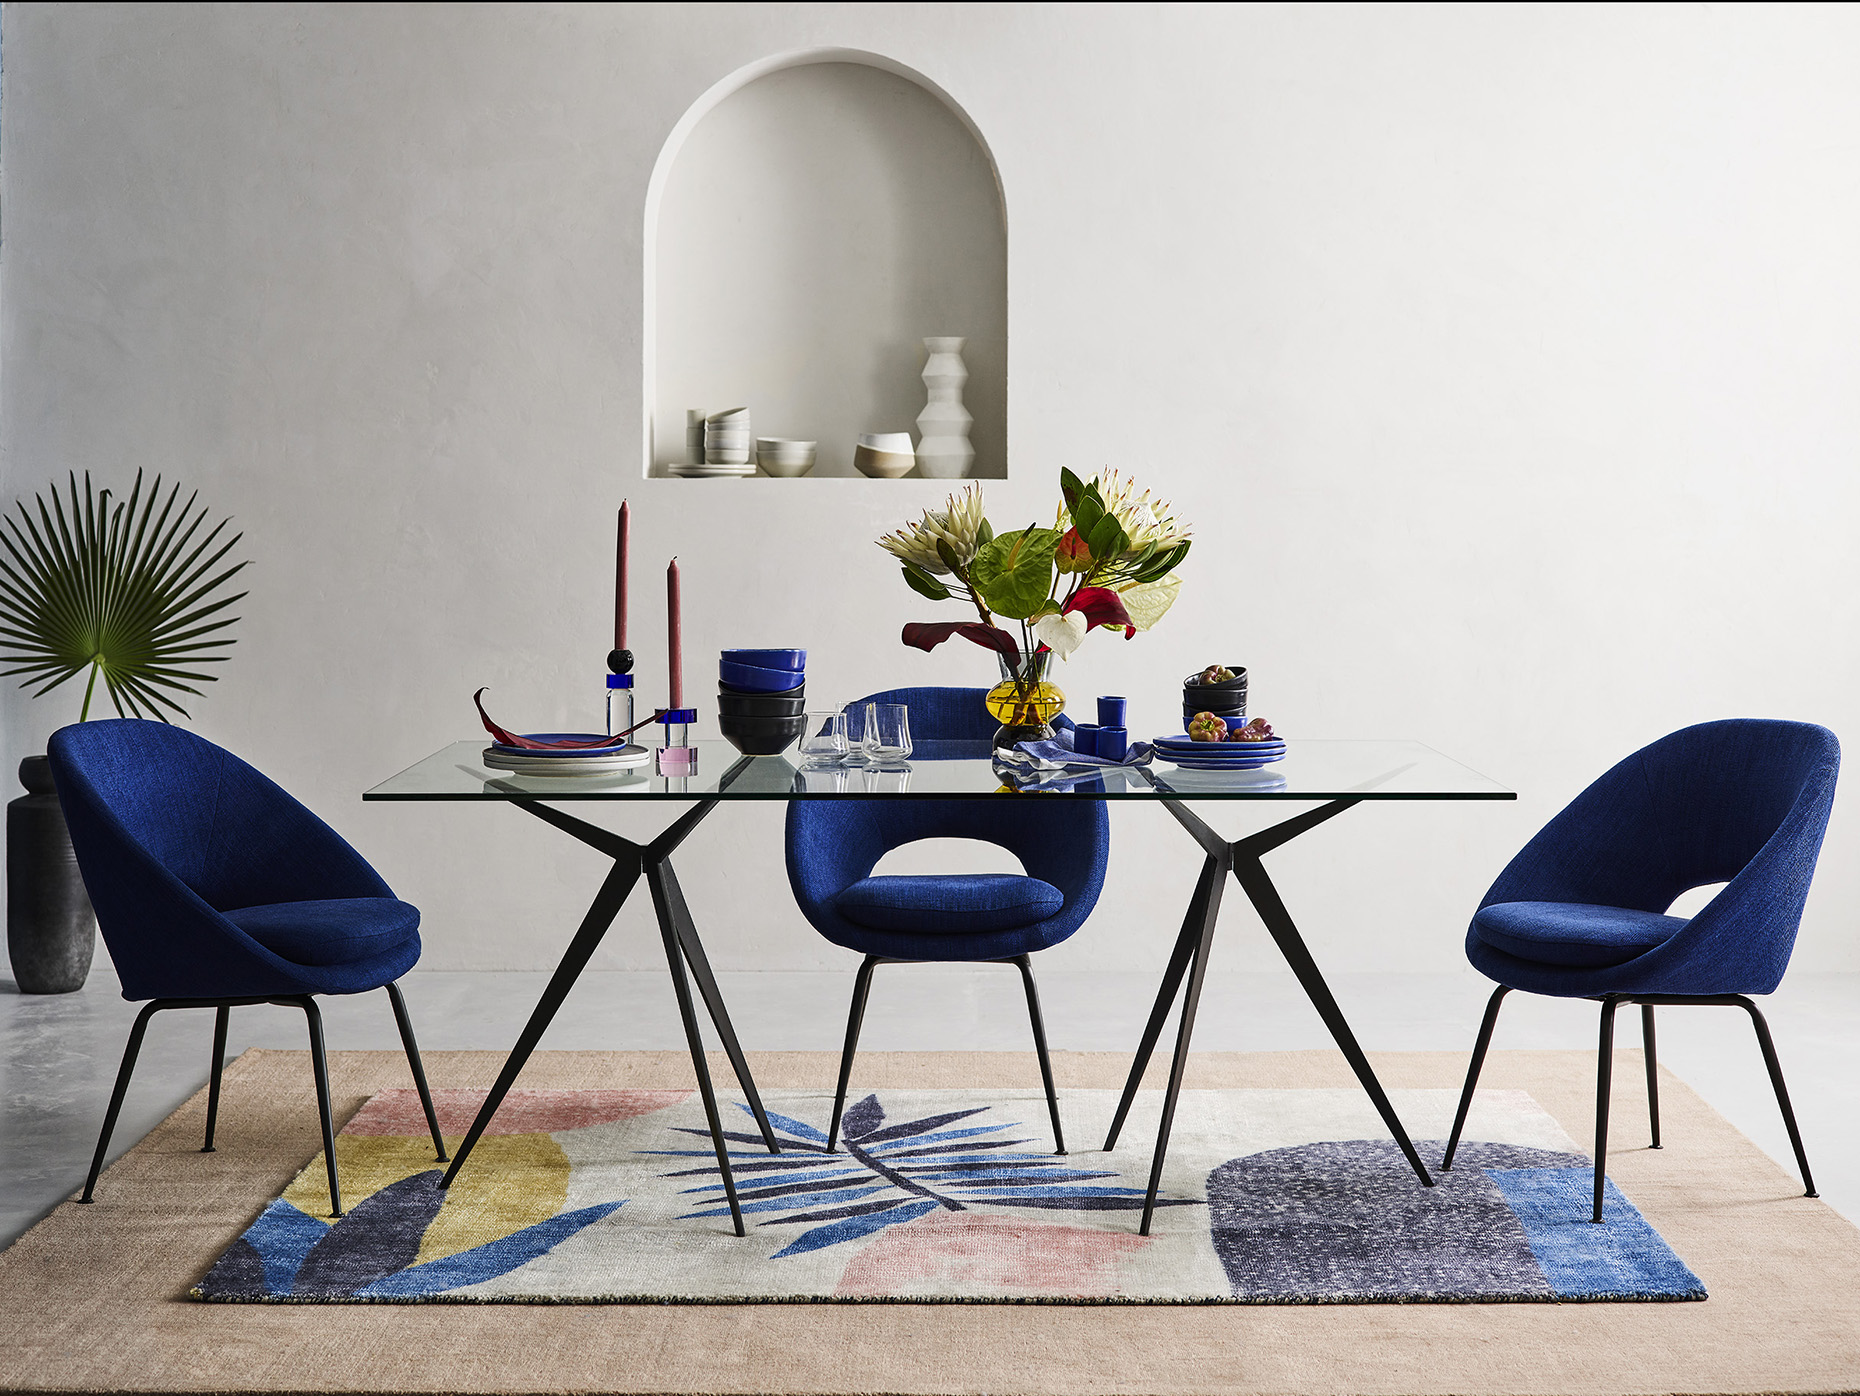 d4-homepage-statement-dining-table-sp19_7734